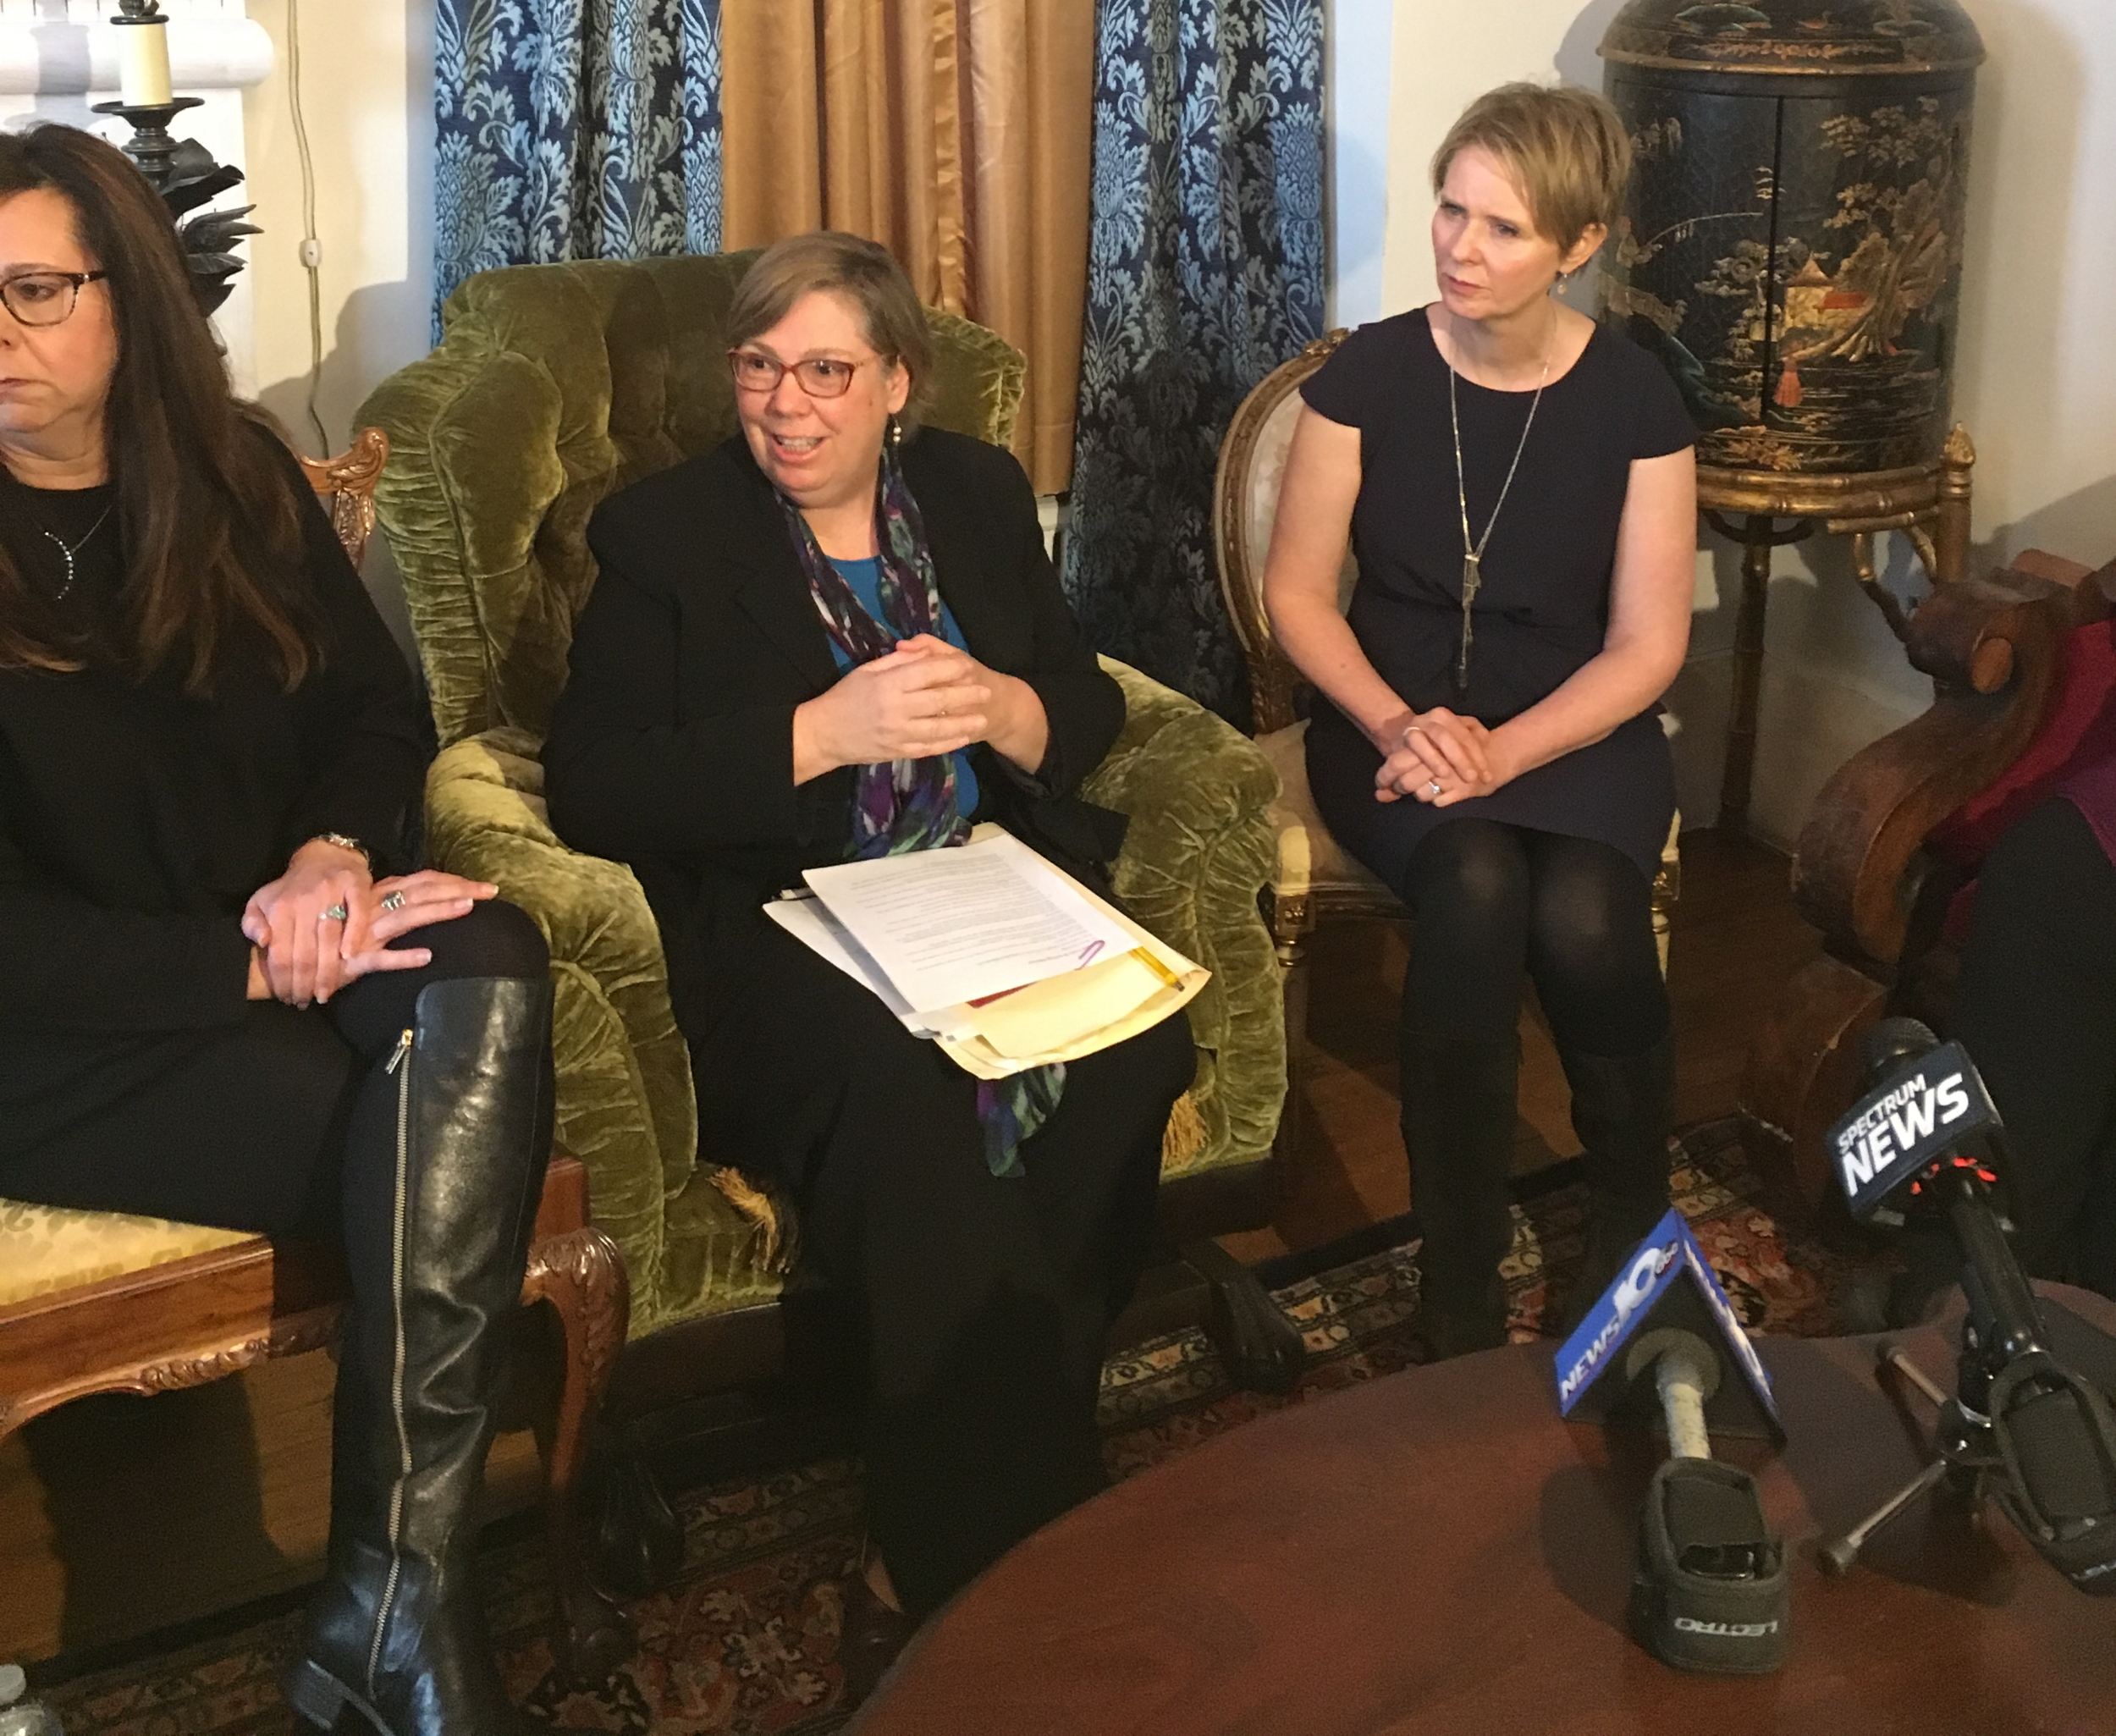 (From left to right) Activist Michele Baker, former EPA Regional Administrator Judith Enck, and New York gubernatorial candidate Cynthia Nixon at a recent press conference in North Hoosick.